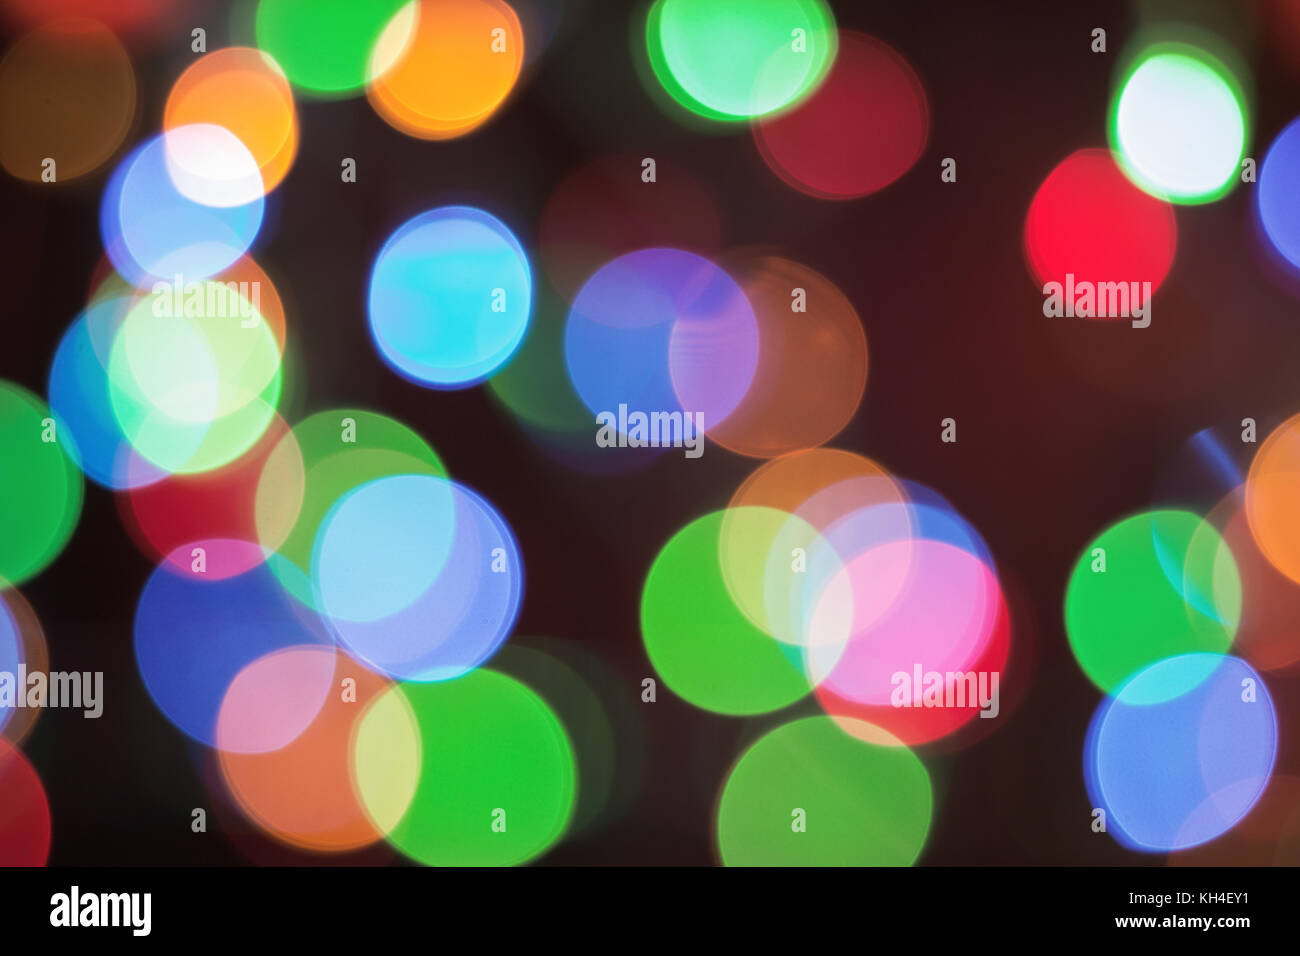 Color light blurred background, green, blue, red and yellow lights unfocused. Christmas decorations, garland illumination - Stock Image